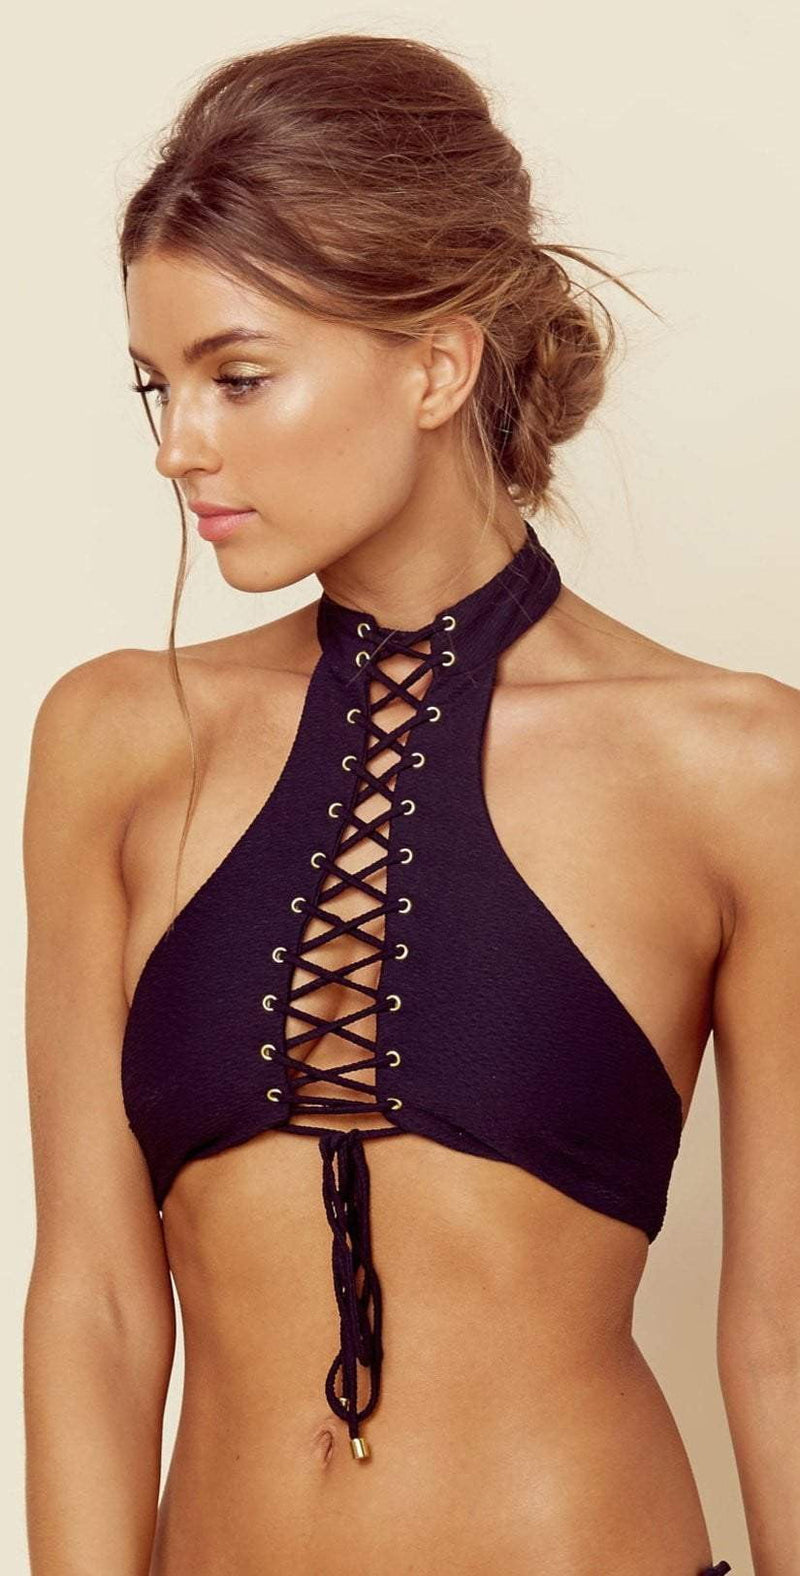 Blue Life Vixen Halter Top In Black 388-2516-BLK: